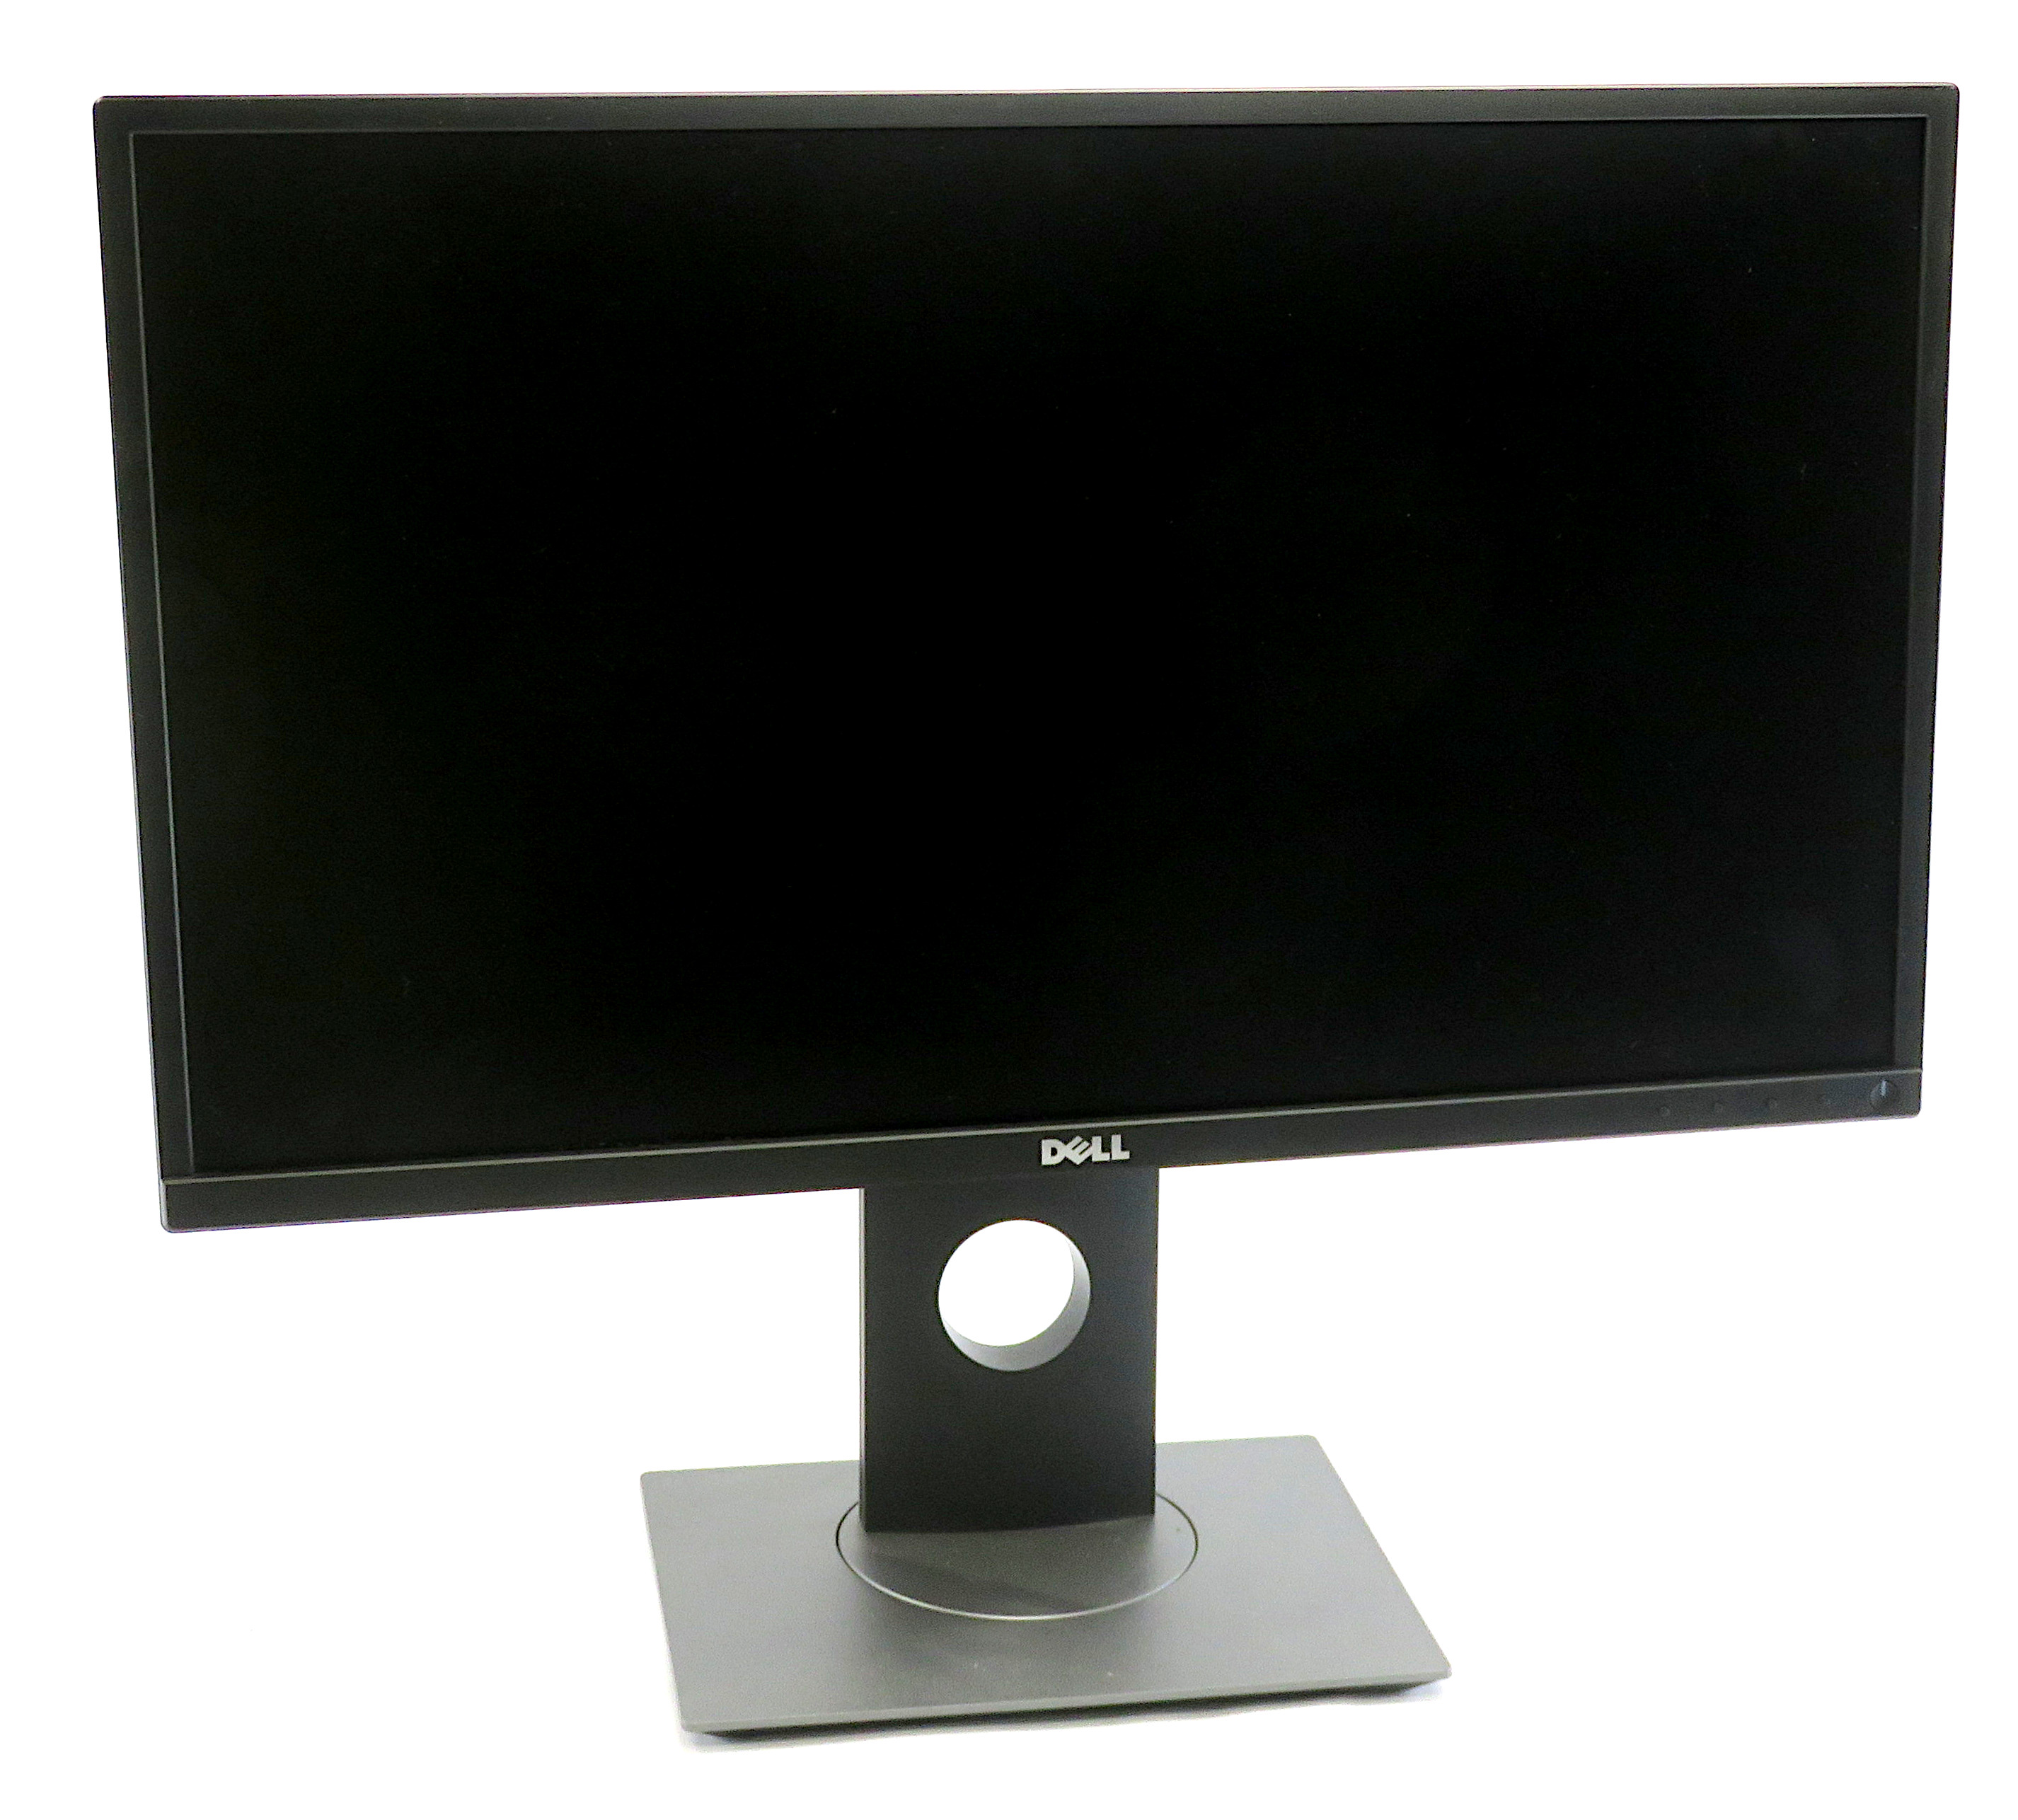 "Dell P2417H 24"" Full HD IPS Monitor DP/HDMI/VGA w/ 2xUSB 3.0 & 2x USB 2.0 Hub"